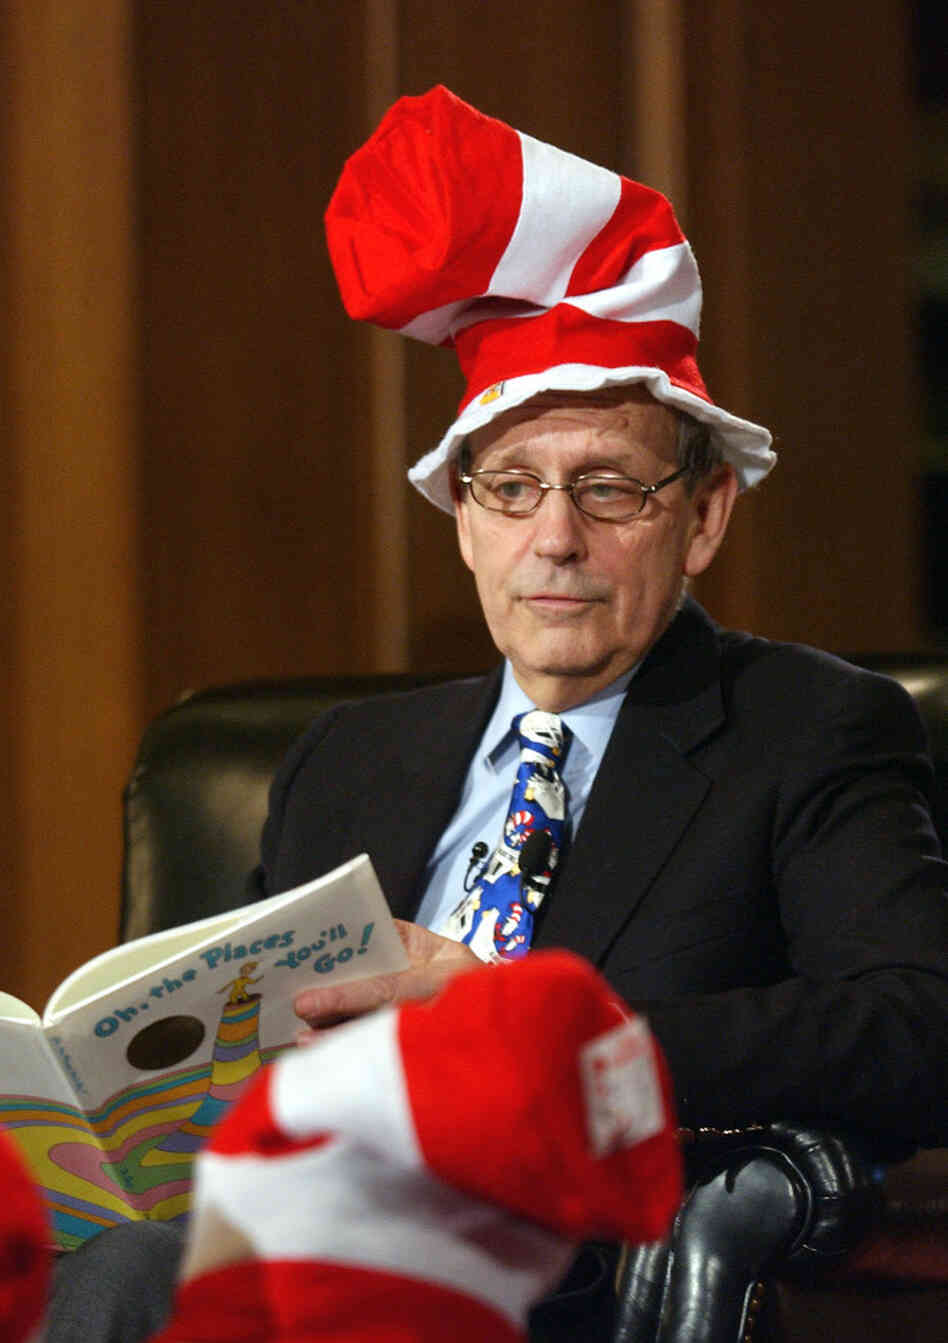 March 2 is Dr. Seuss Day, also known as Read Across America Day. In 2003, Supreme Court Justice Stephen Breyer, sporting a Cat in the Hat hat helped celebrate the day by reading Dr. Seuss's Oh, the Places You'll Go! to elementary school students in Washington, D.C.